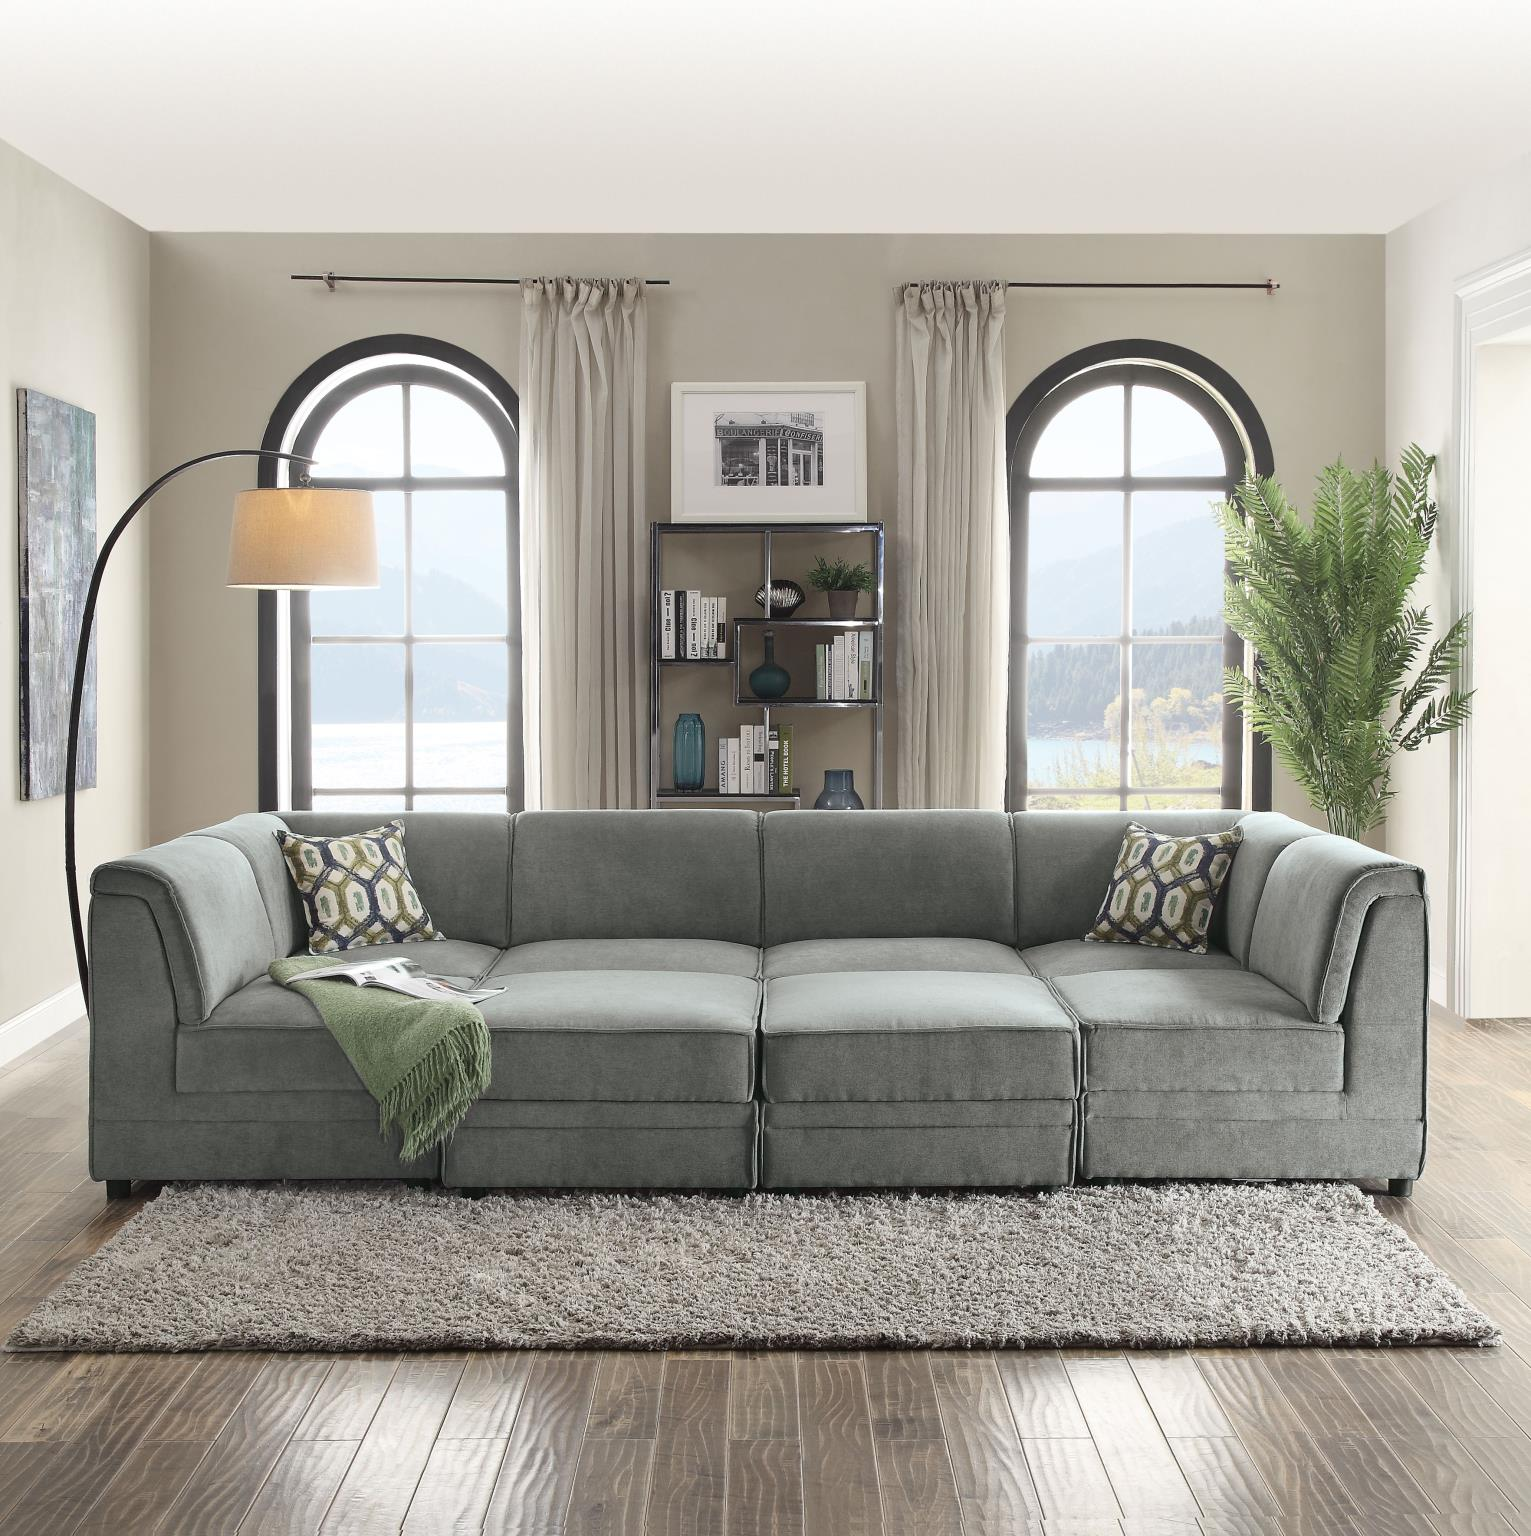 Complete Sectional Sofa w/ 4 Armless Chairs, 2 Corners, and 2 Ottomans